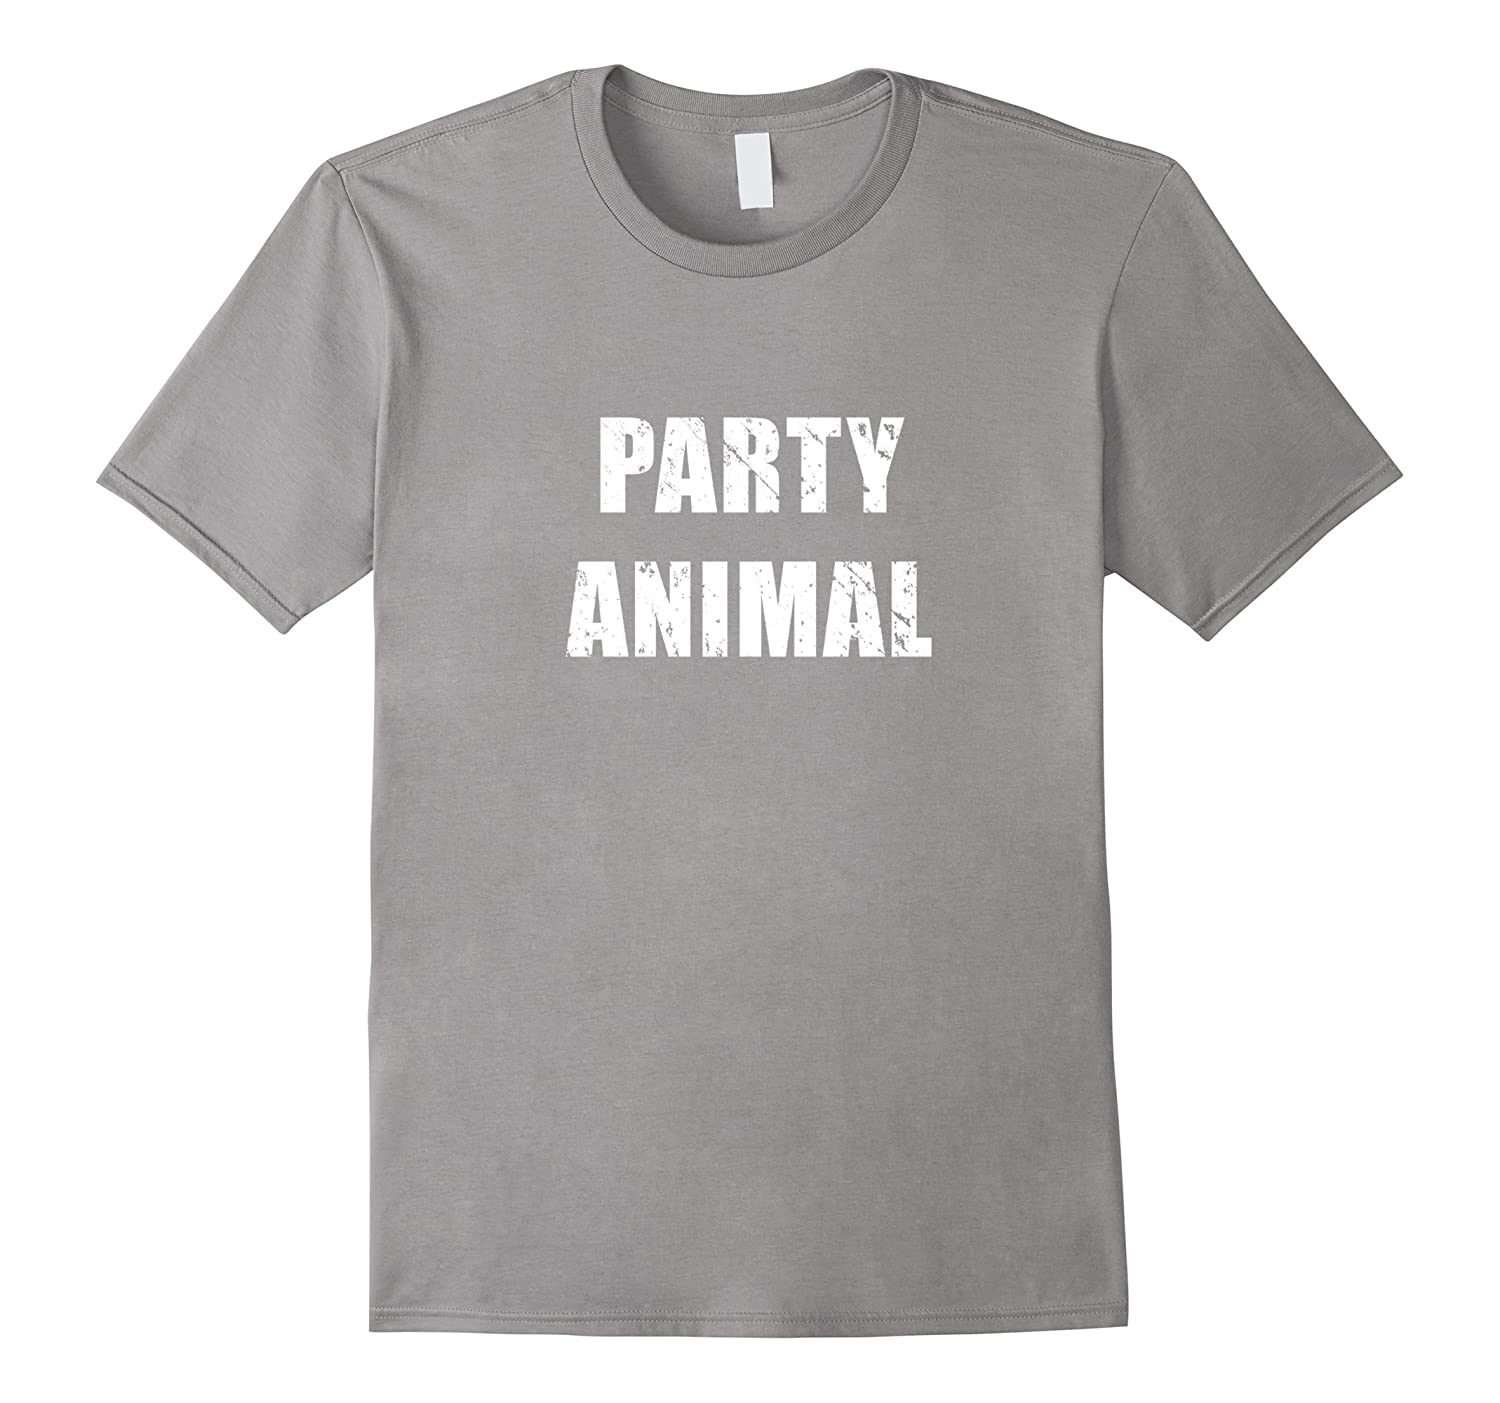 Party Animal Tee Shirt Lets Get Crazy And Go Wild-FL